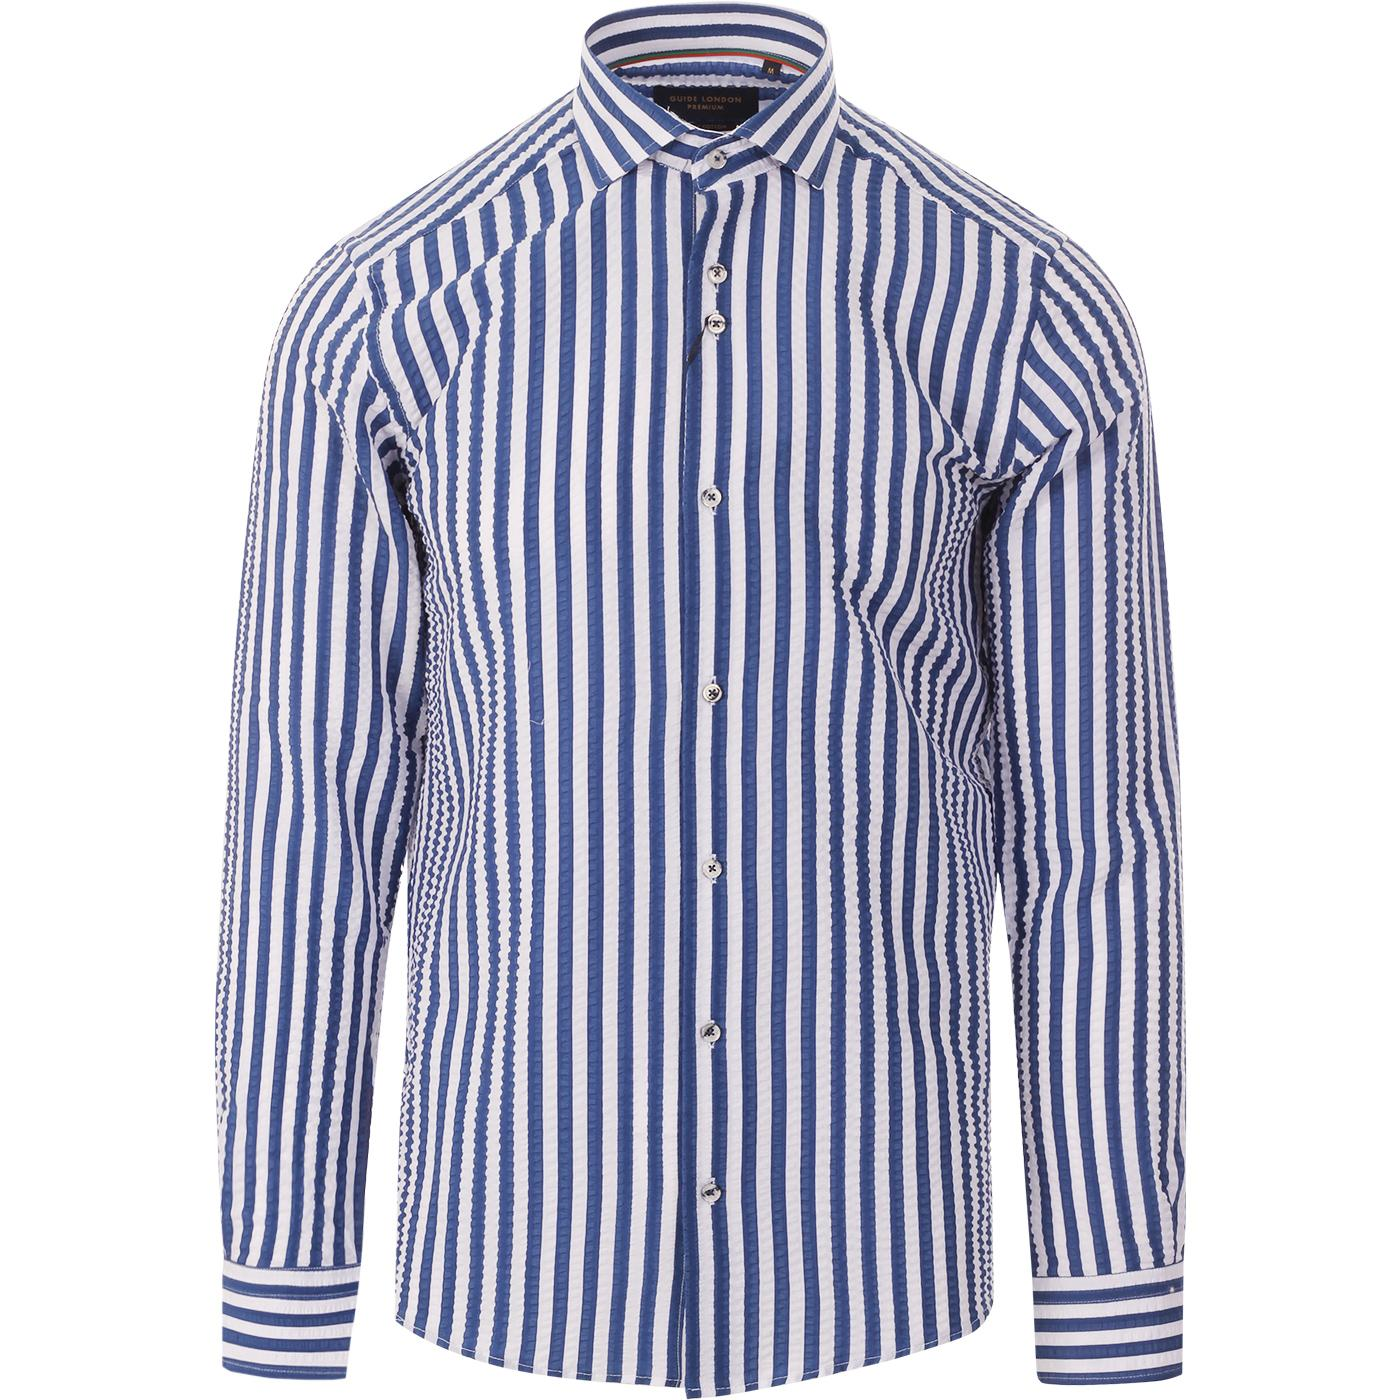 GUIDE LONDON 60s Mod Stripe Seersucker Shirt (W/B)